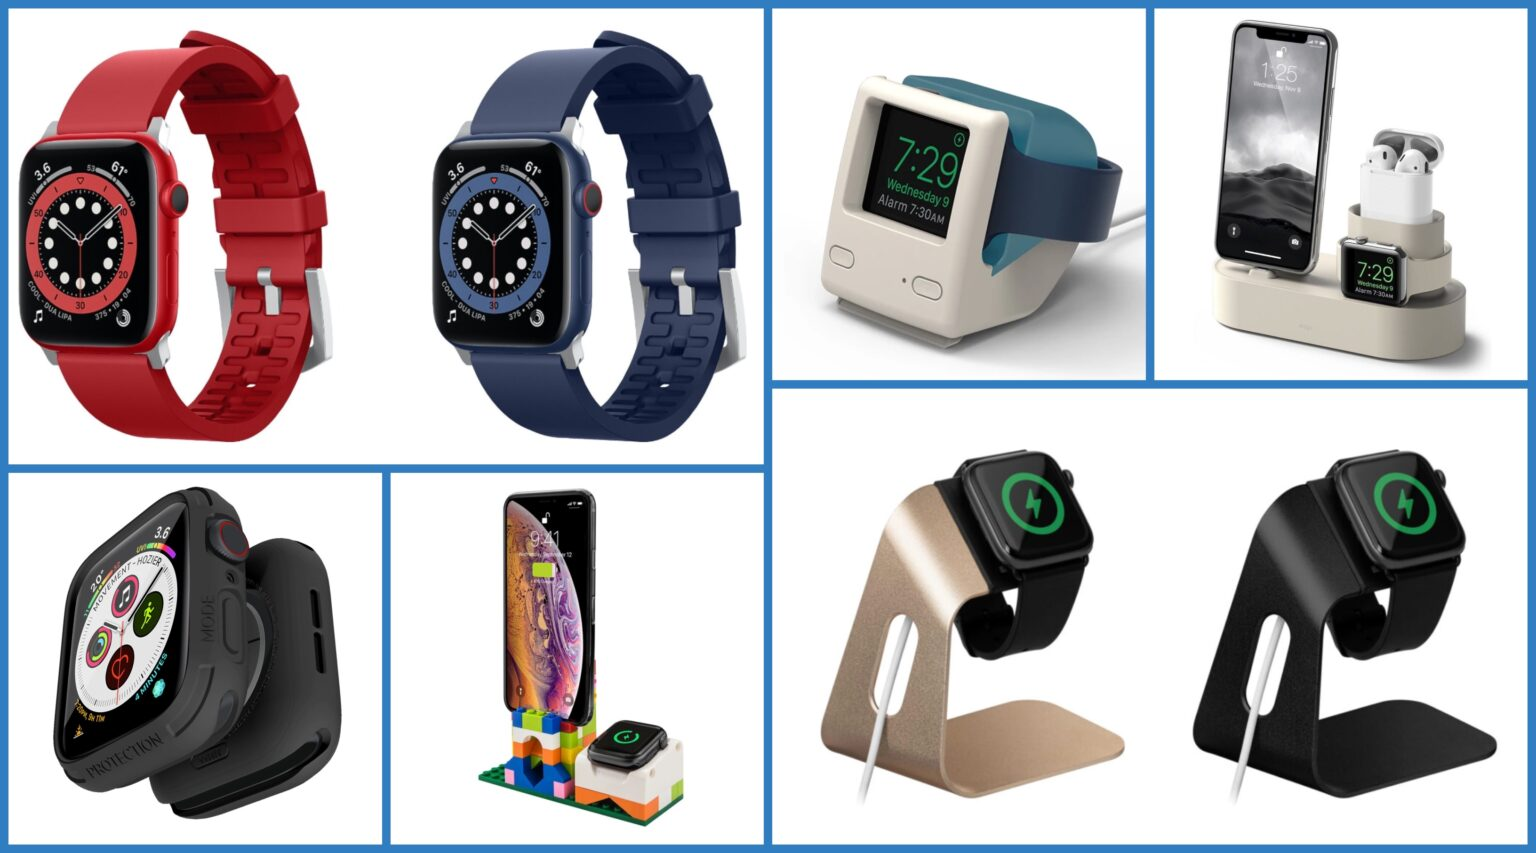 Apple Watch accessories at low prices